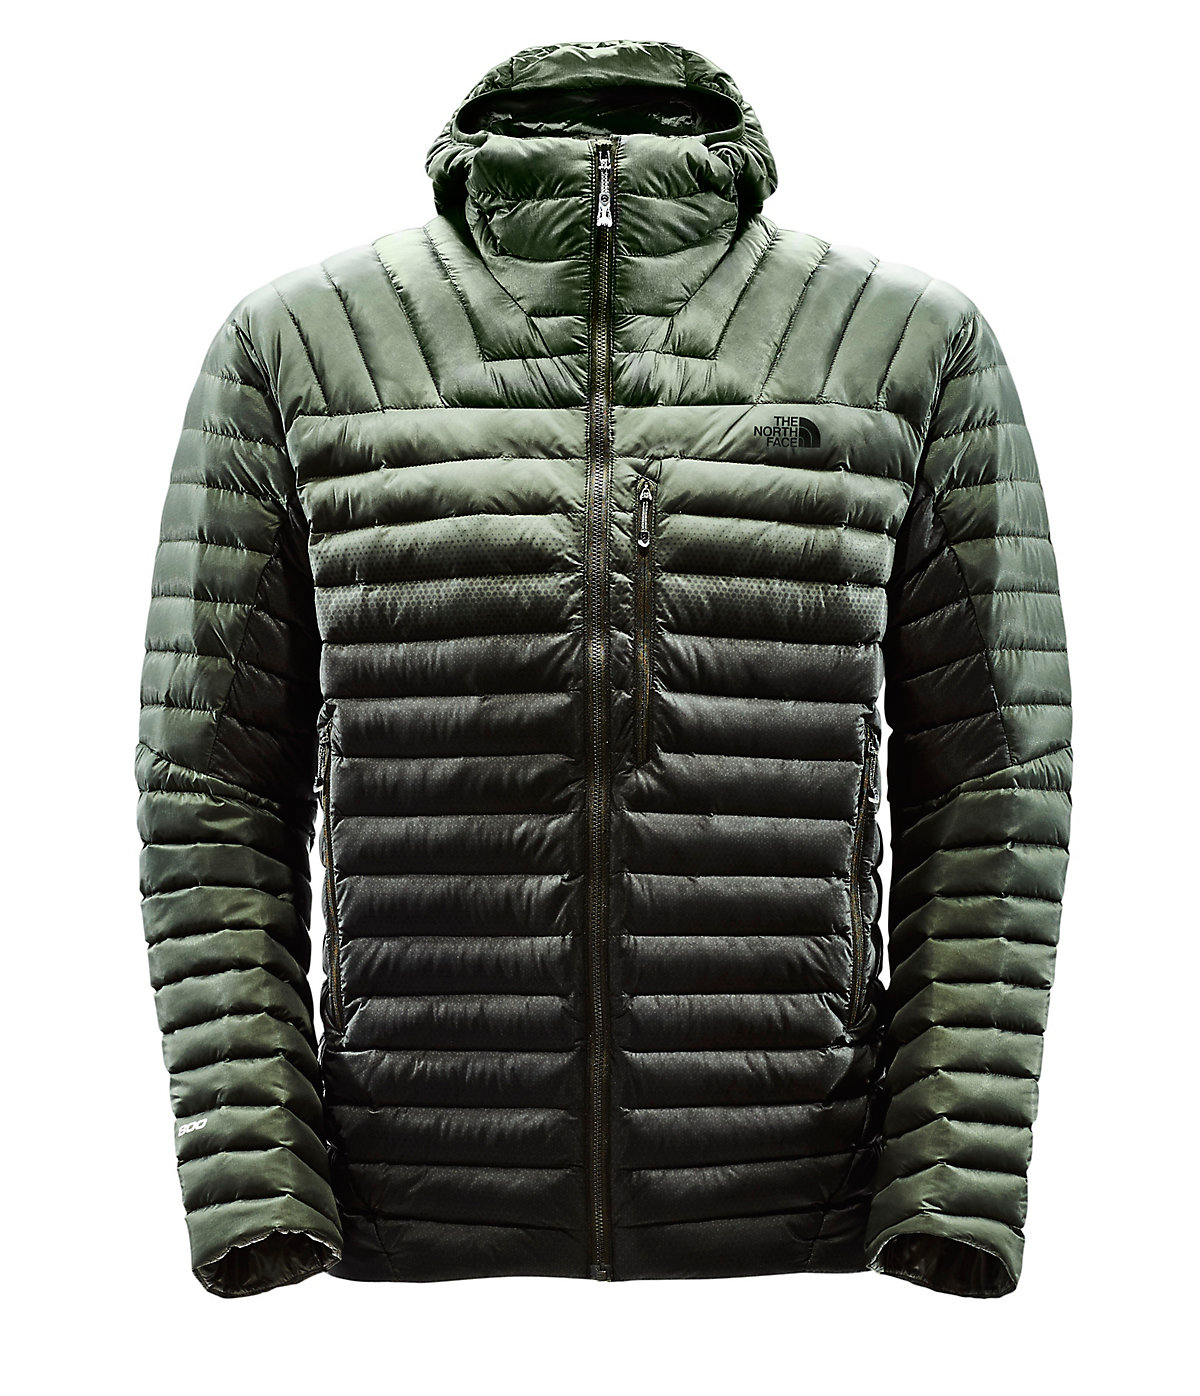 434428a7ae The North Face Men s Summit L3 Down Mid-Layer